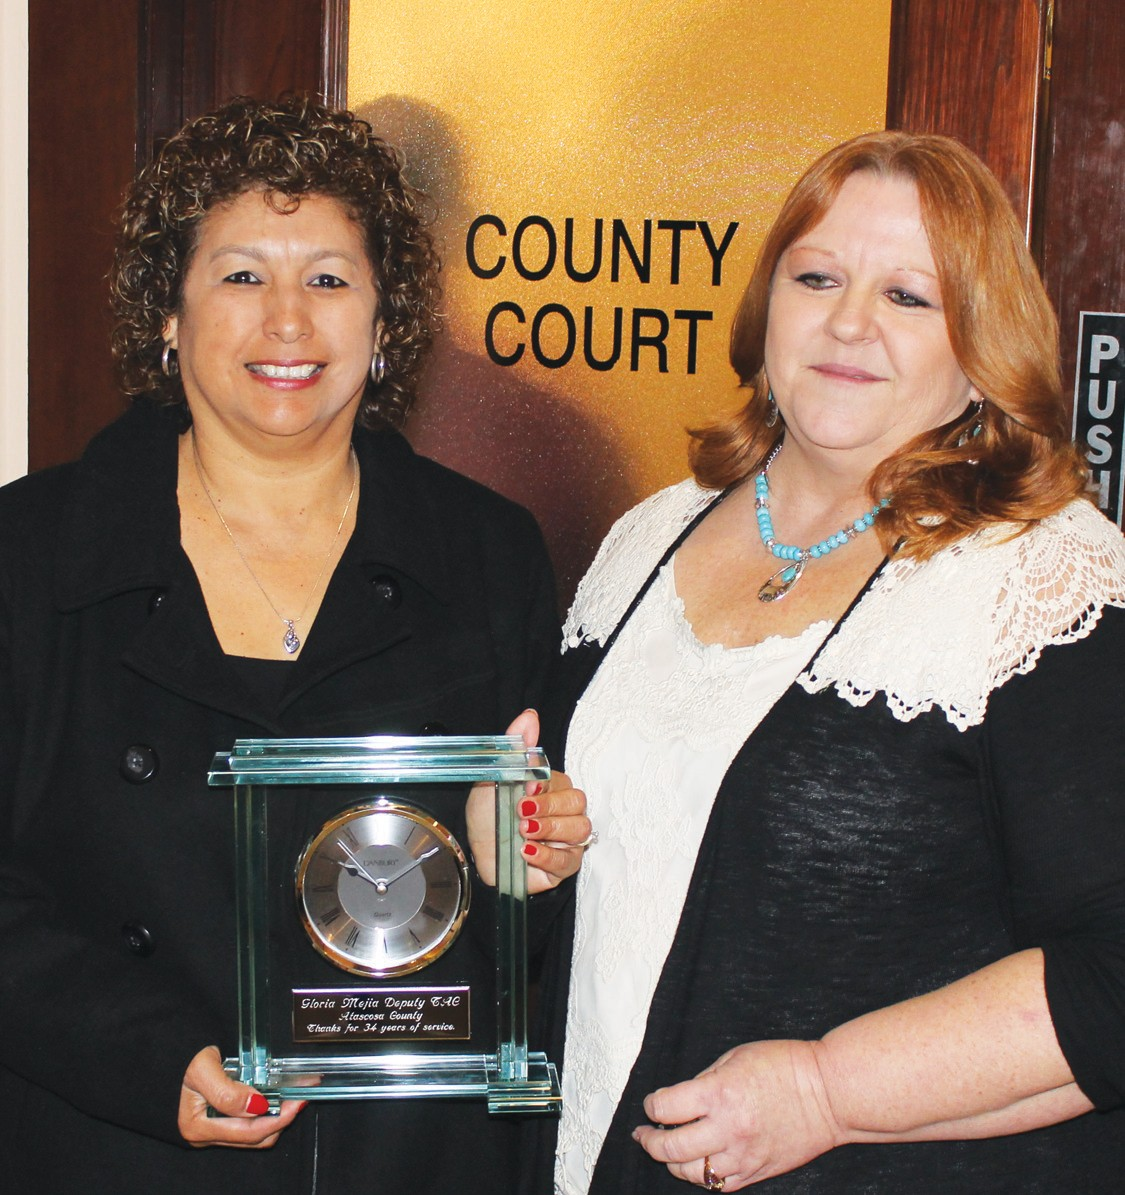 Gloria Mejia, left, receiving retirement plaque from Atascosa County Tax Assessor-Collector Loretta Holley. Gloria had seved as a Deputy Tax Assessor-Collector for a total of 34 years. She served in that position from November 7, 1977 to September 30, 1989 (12 years) and later from February 25, 1991 to December 31, 2013.